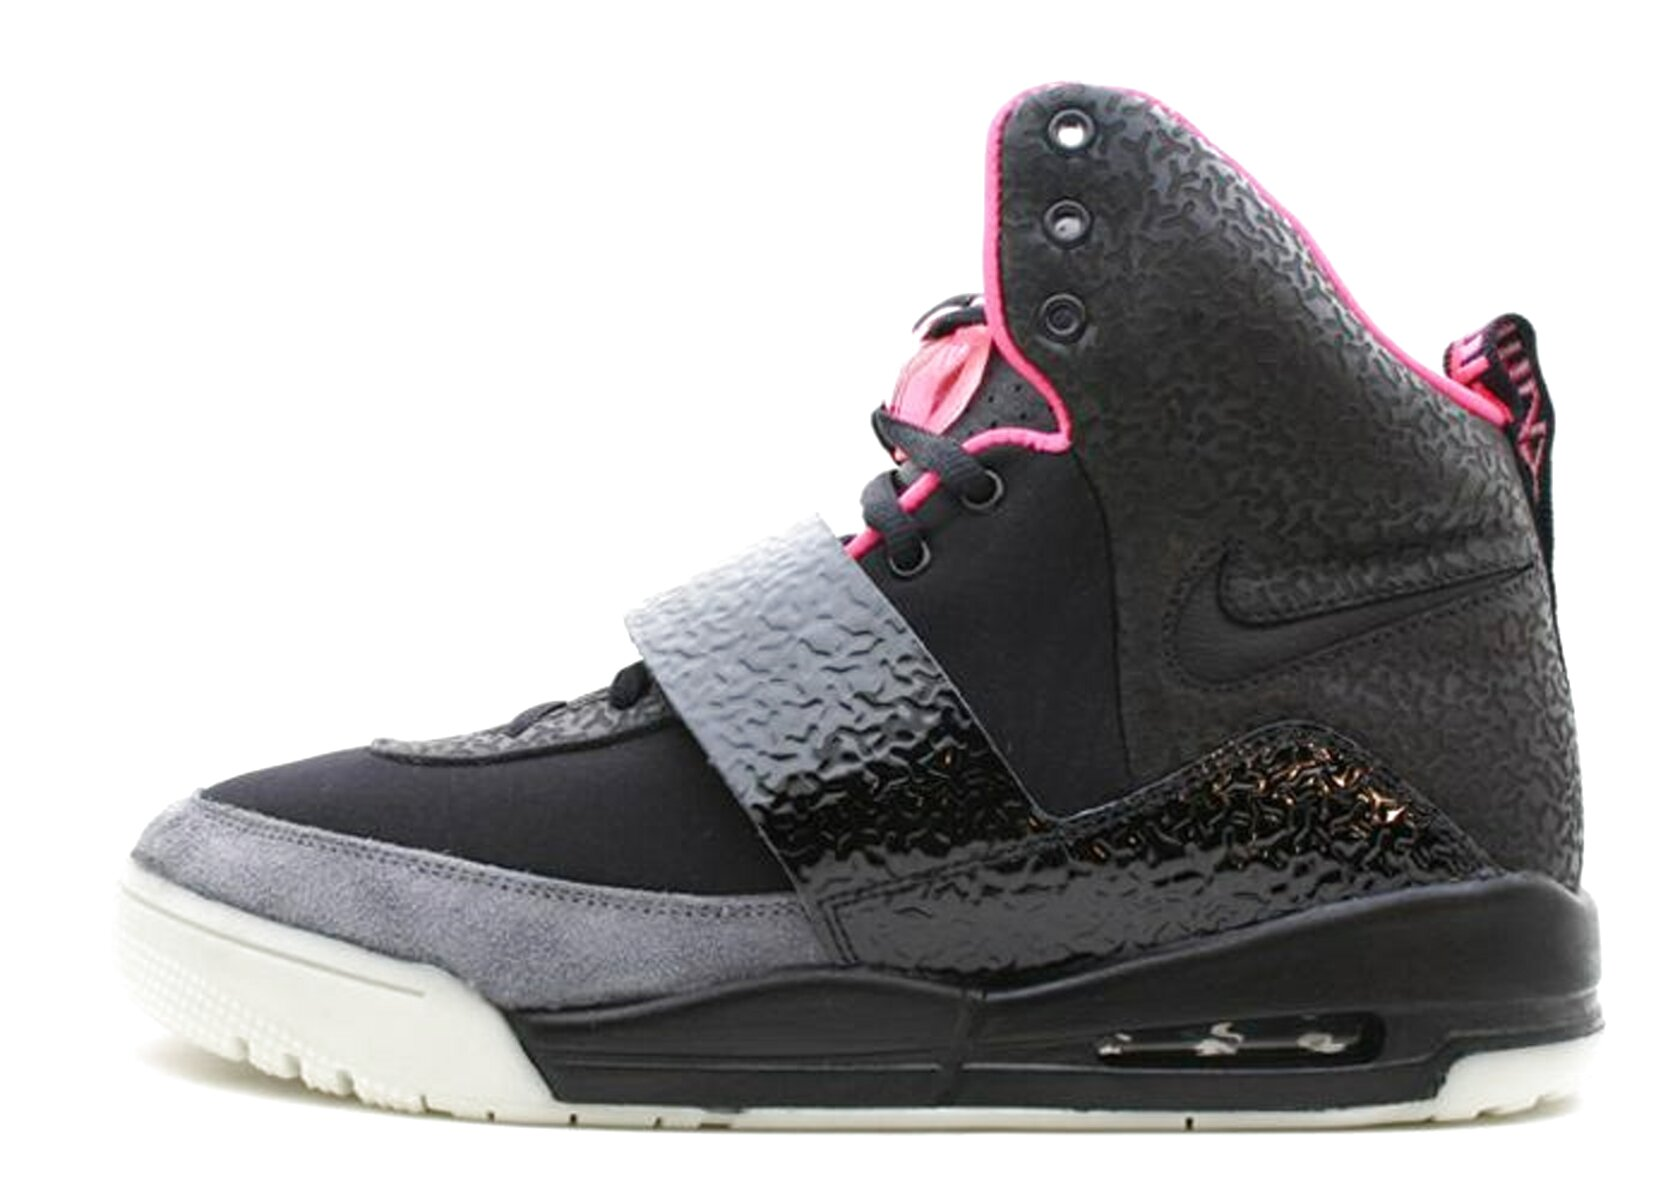 yeezy 1 for sale